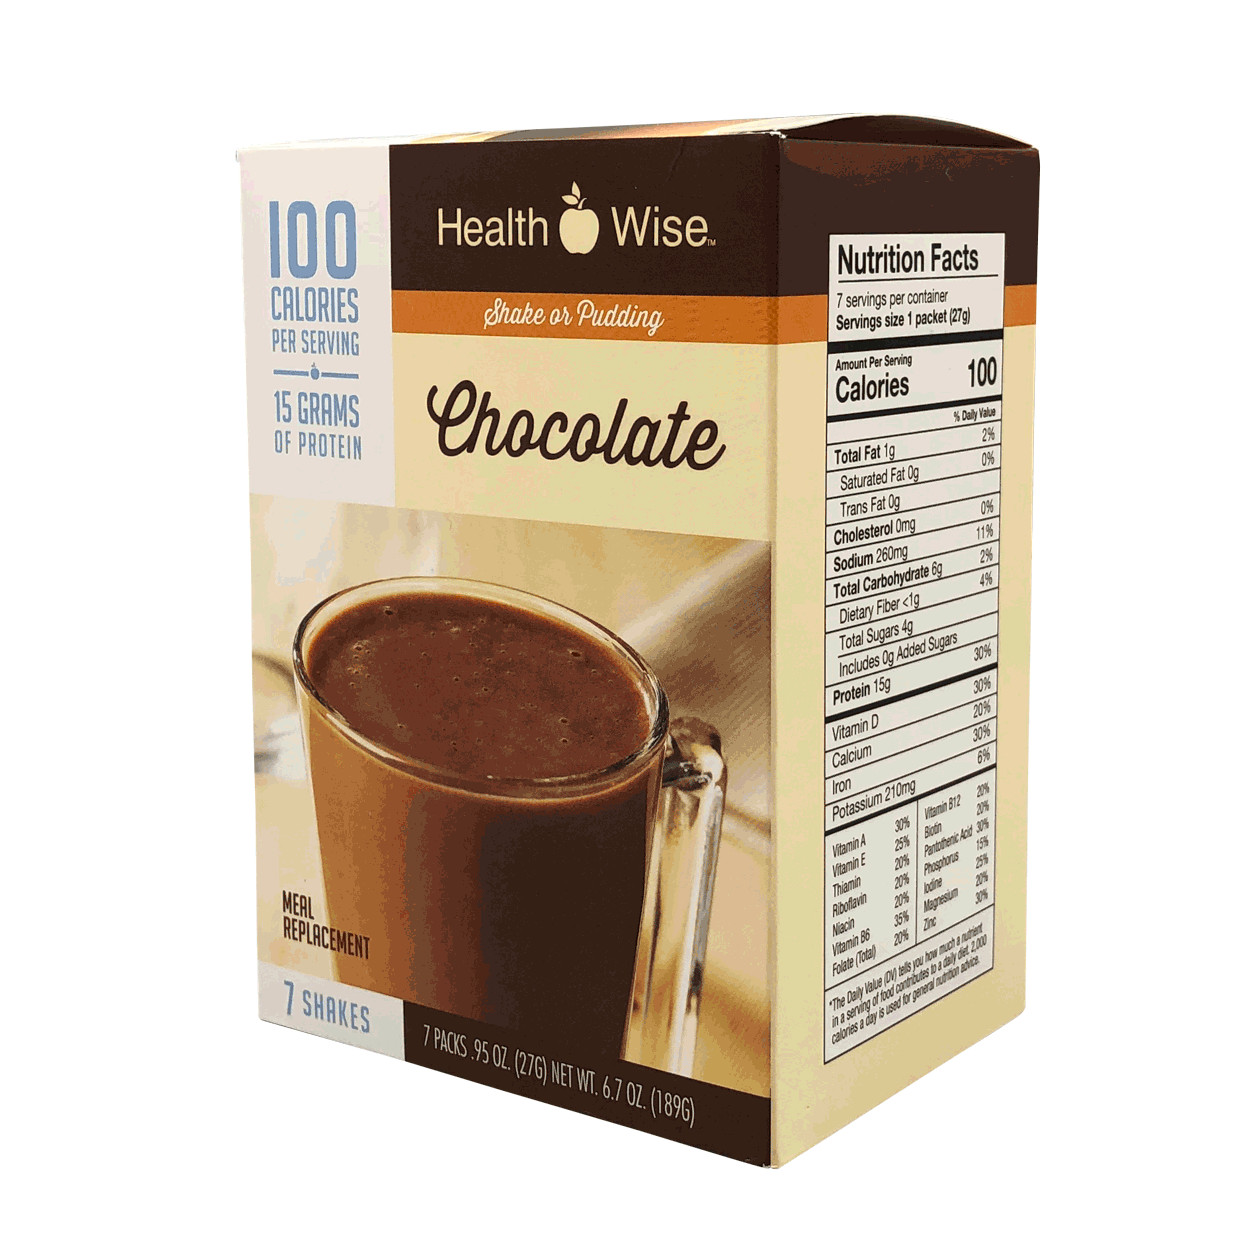 Meal Replacement Chocolate - 100 Calories